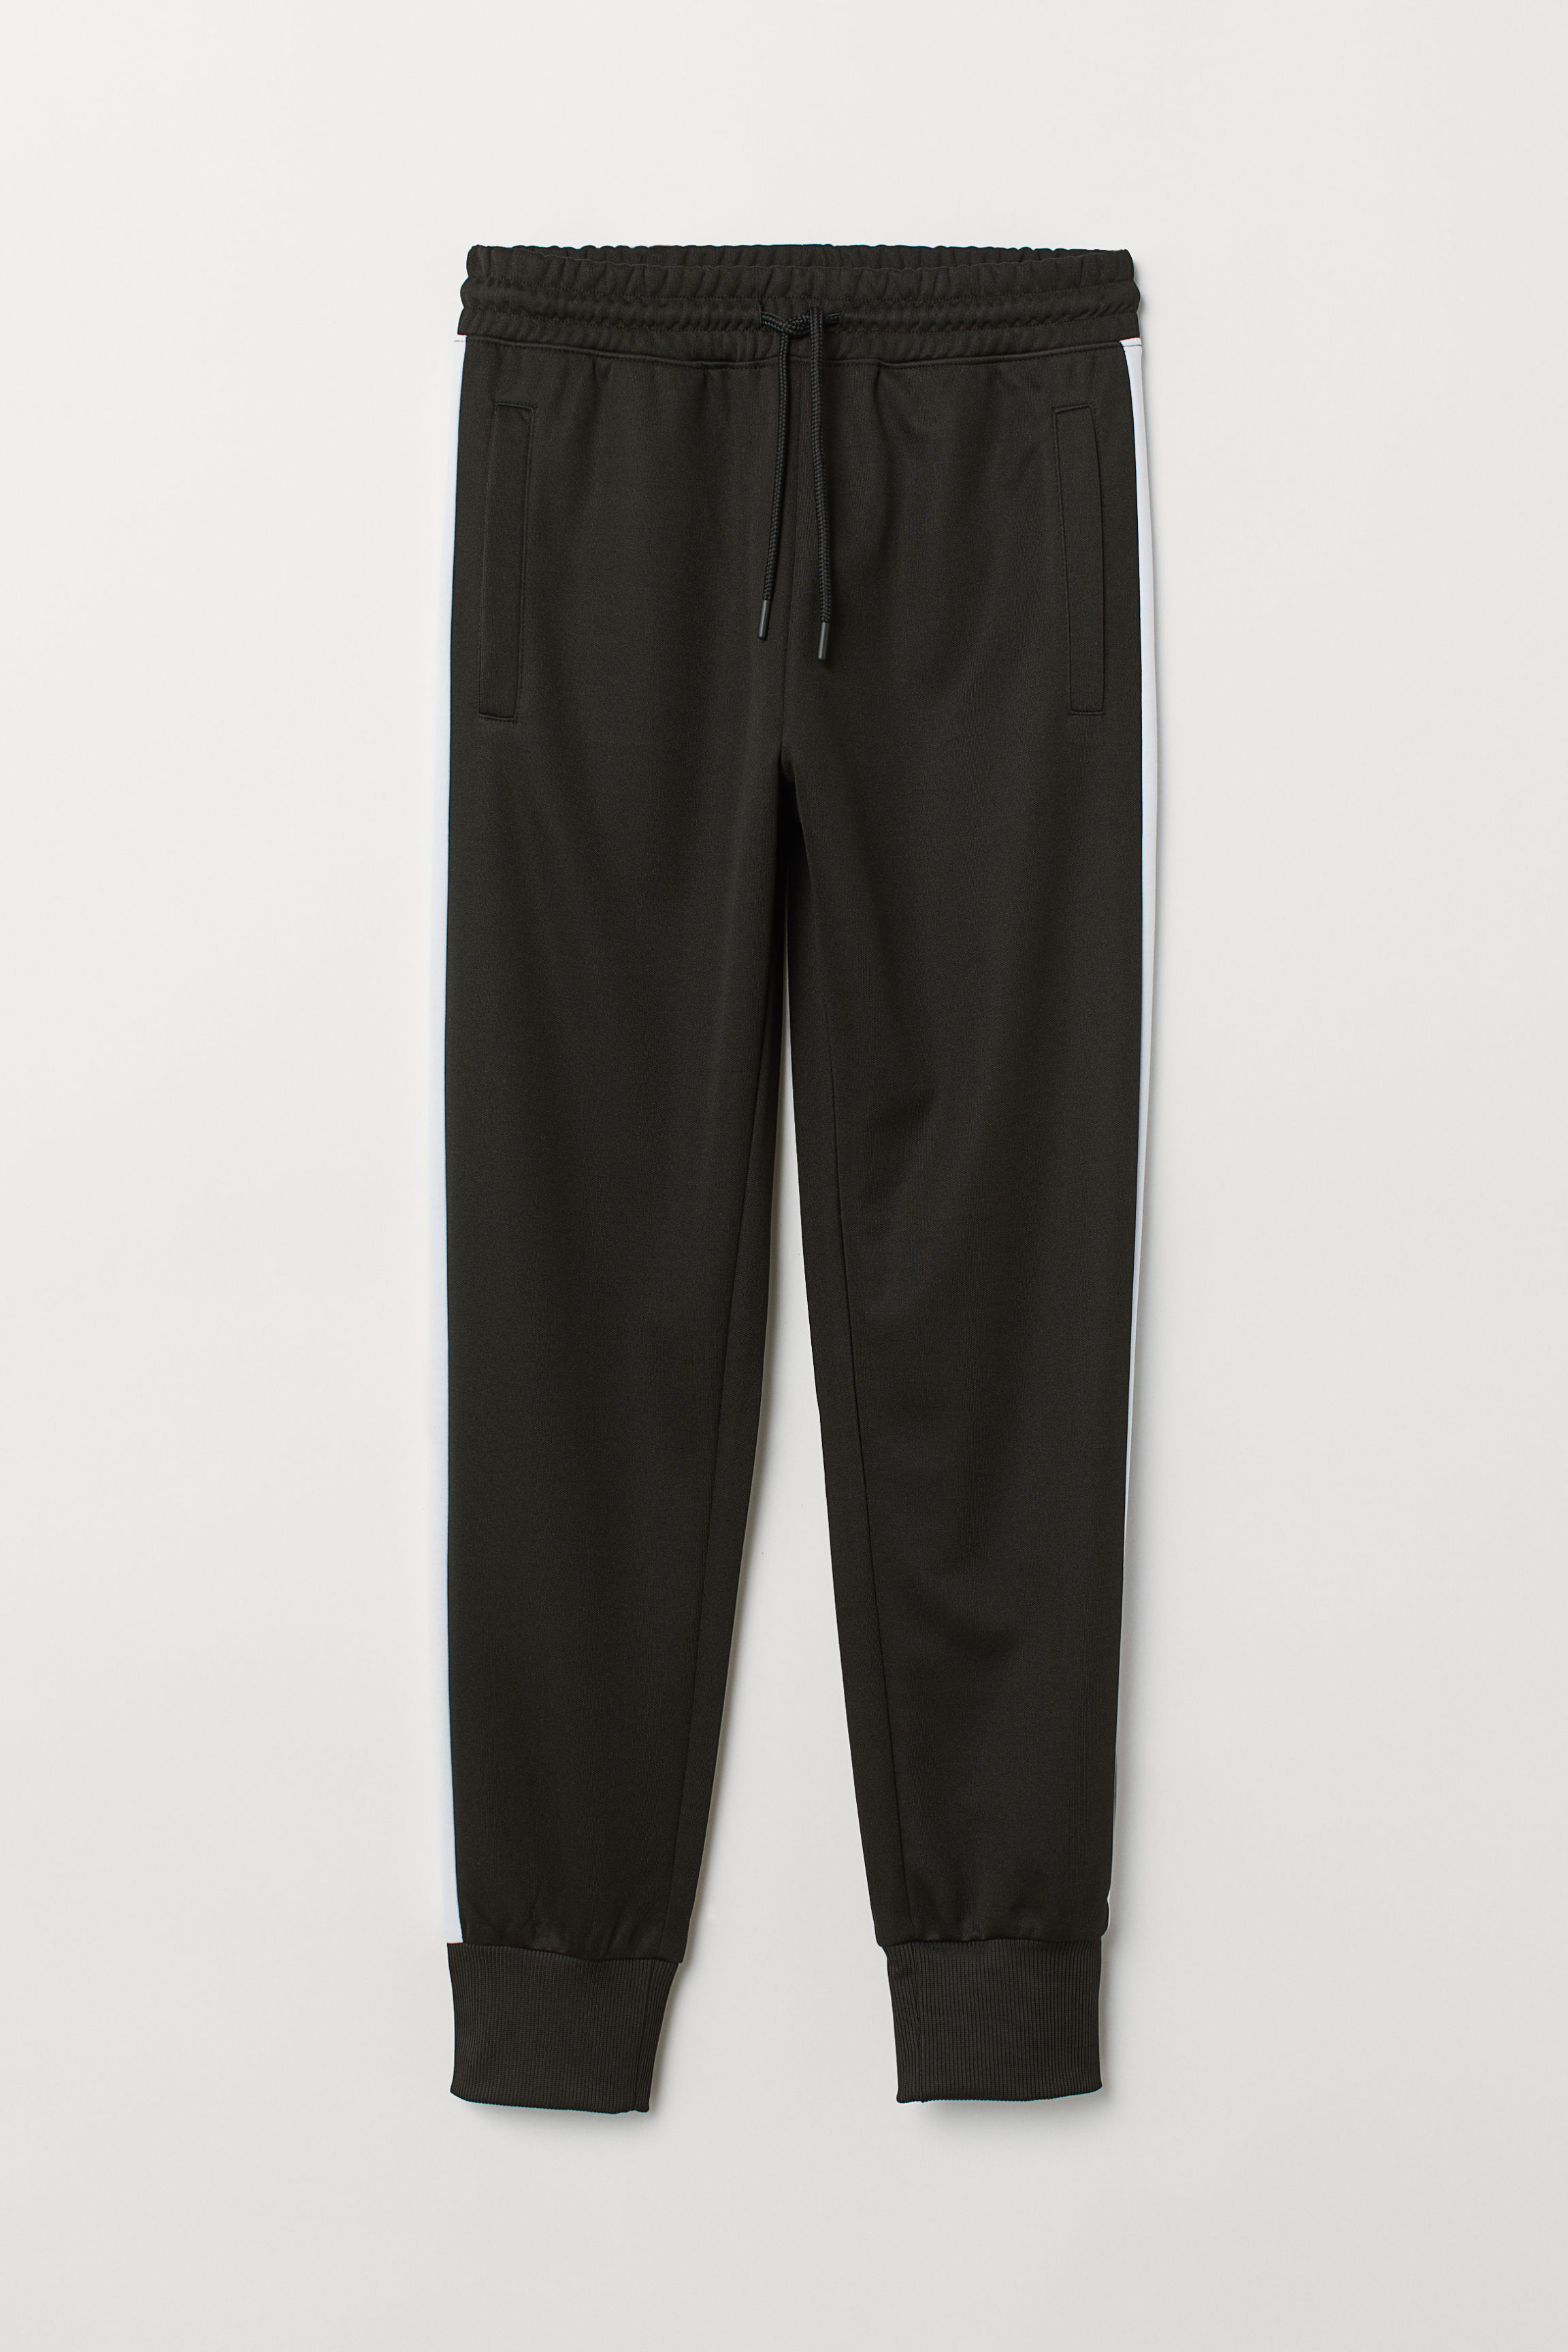 743ab3978 Sports Pants with Side Stripes - Black/white - | H&M US